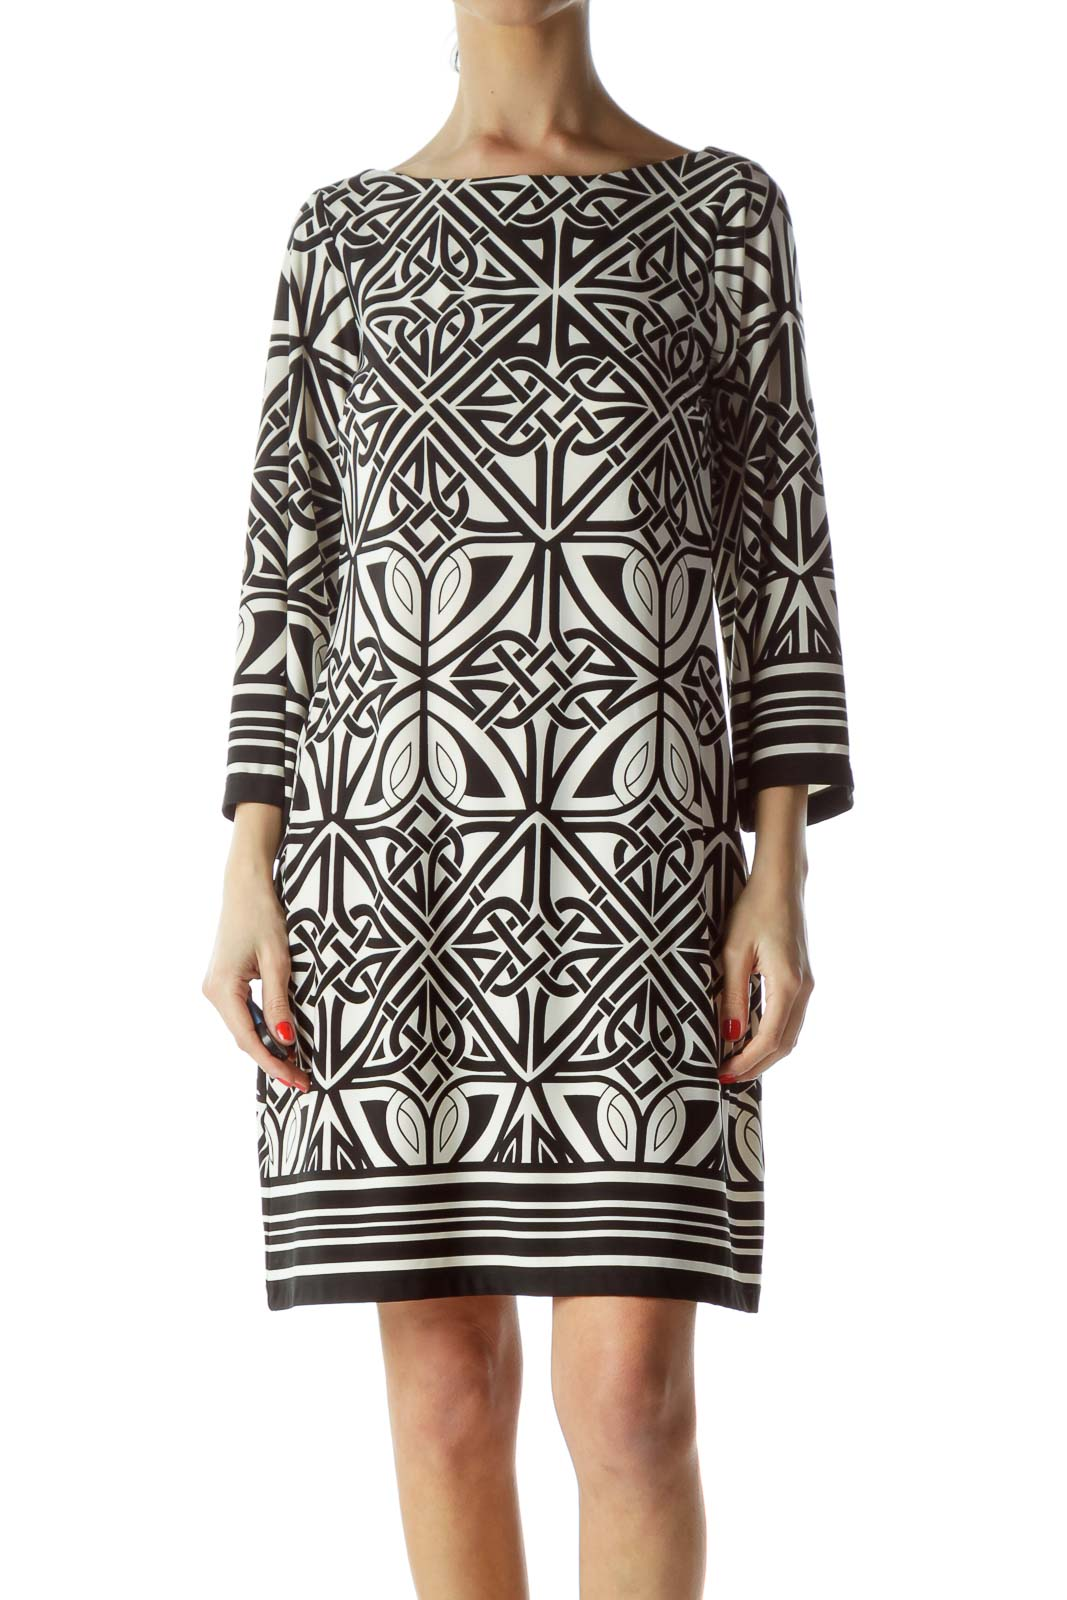 Black Cream Printed Boat Neck Dress Front